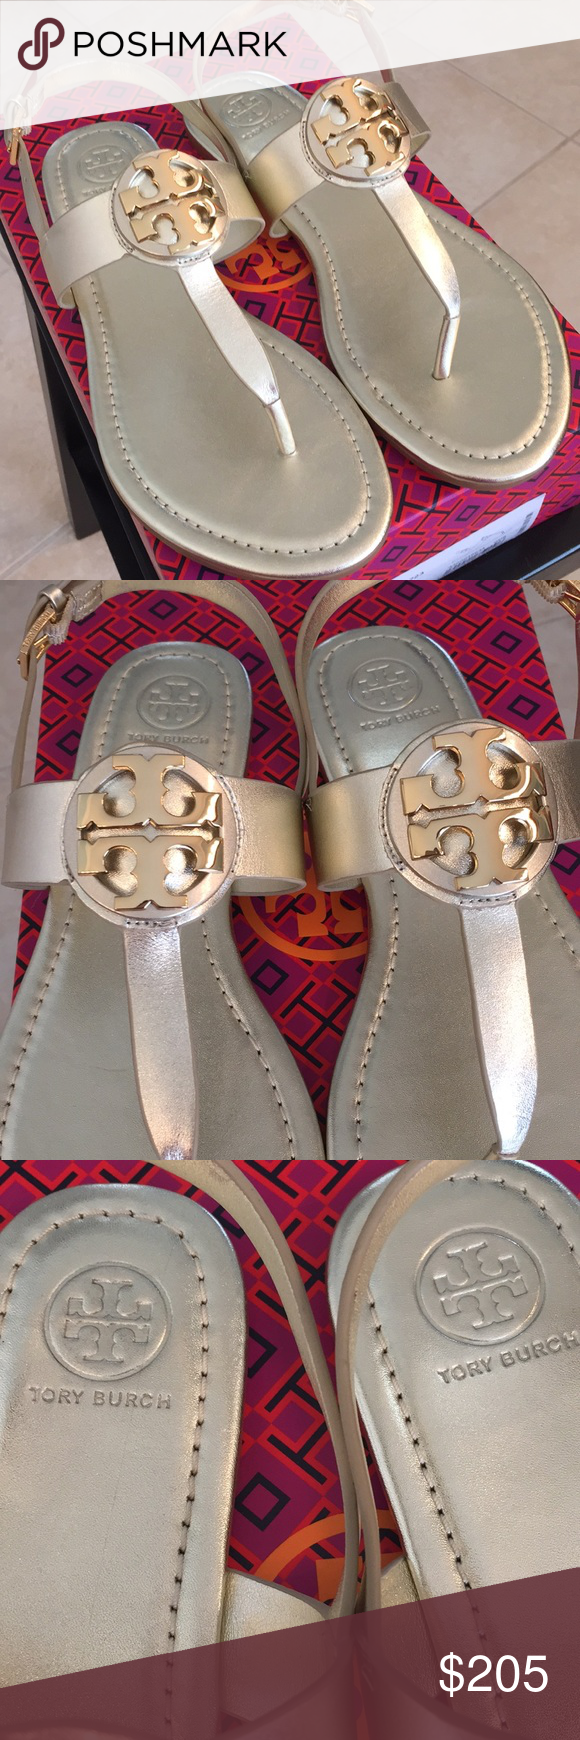 14455cf9d 🆕Tory Burch Bryce Flat thong Sandal in Spark Gold Tory Burch Bryce Thong  Sandal in Metallic Spark Gold are classy and very comfortable with a padded  ...